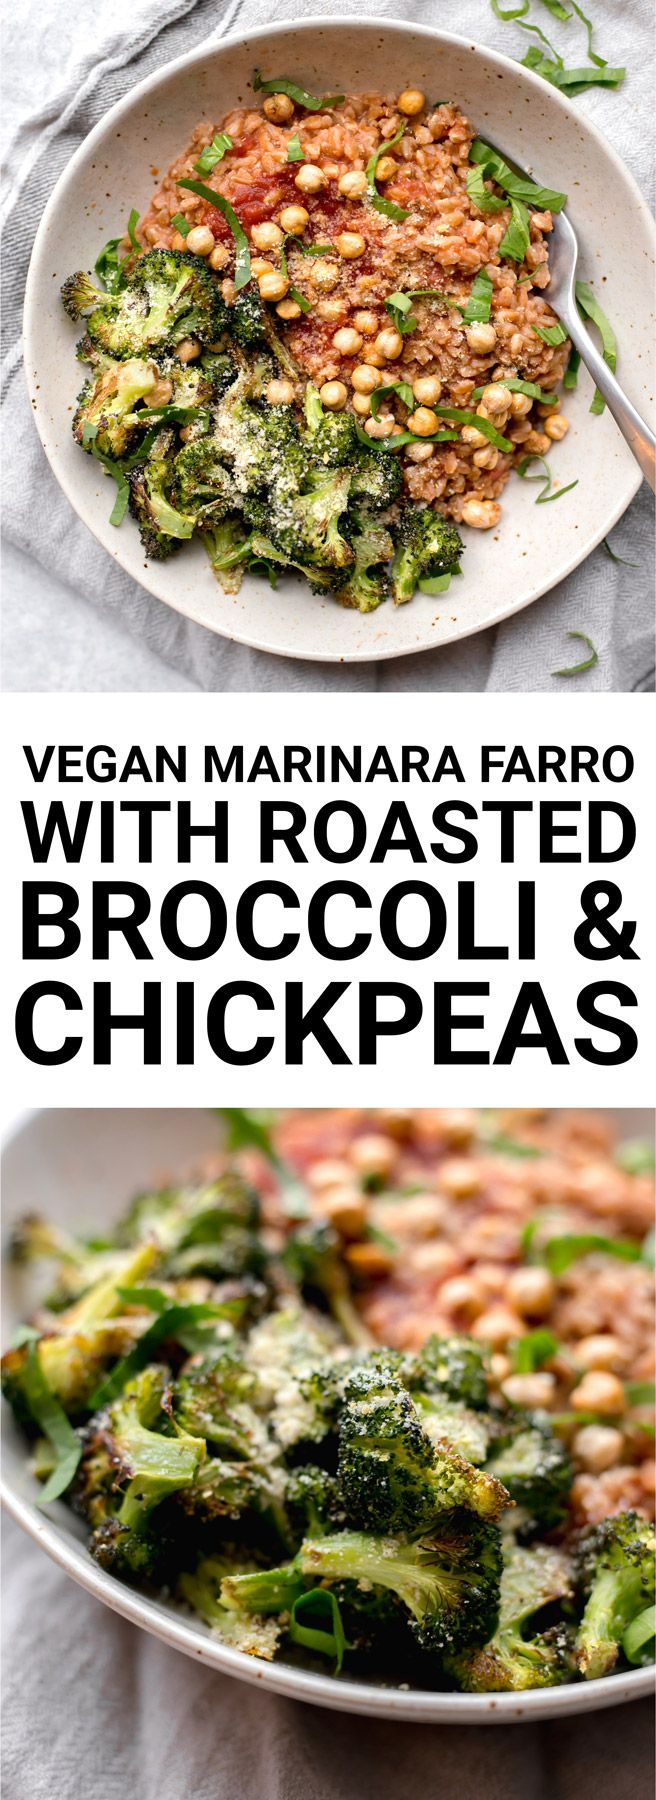 For a simple and comforting plant-based meal, make this 30 minute Vegan Marinara Farro with Roasted Broccoli and Chickpeas  // fooduzzi.com